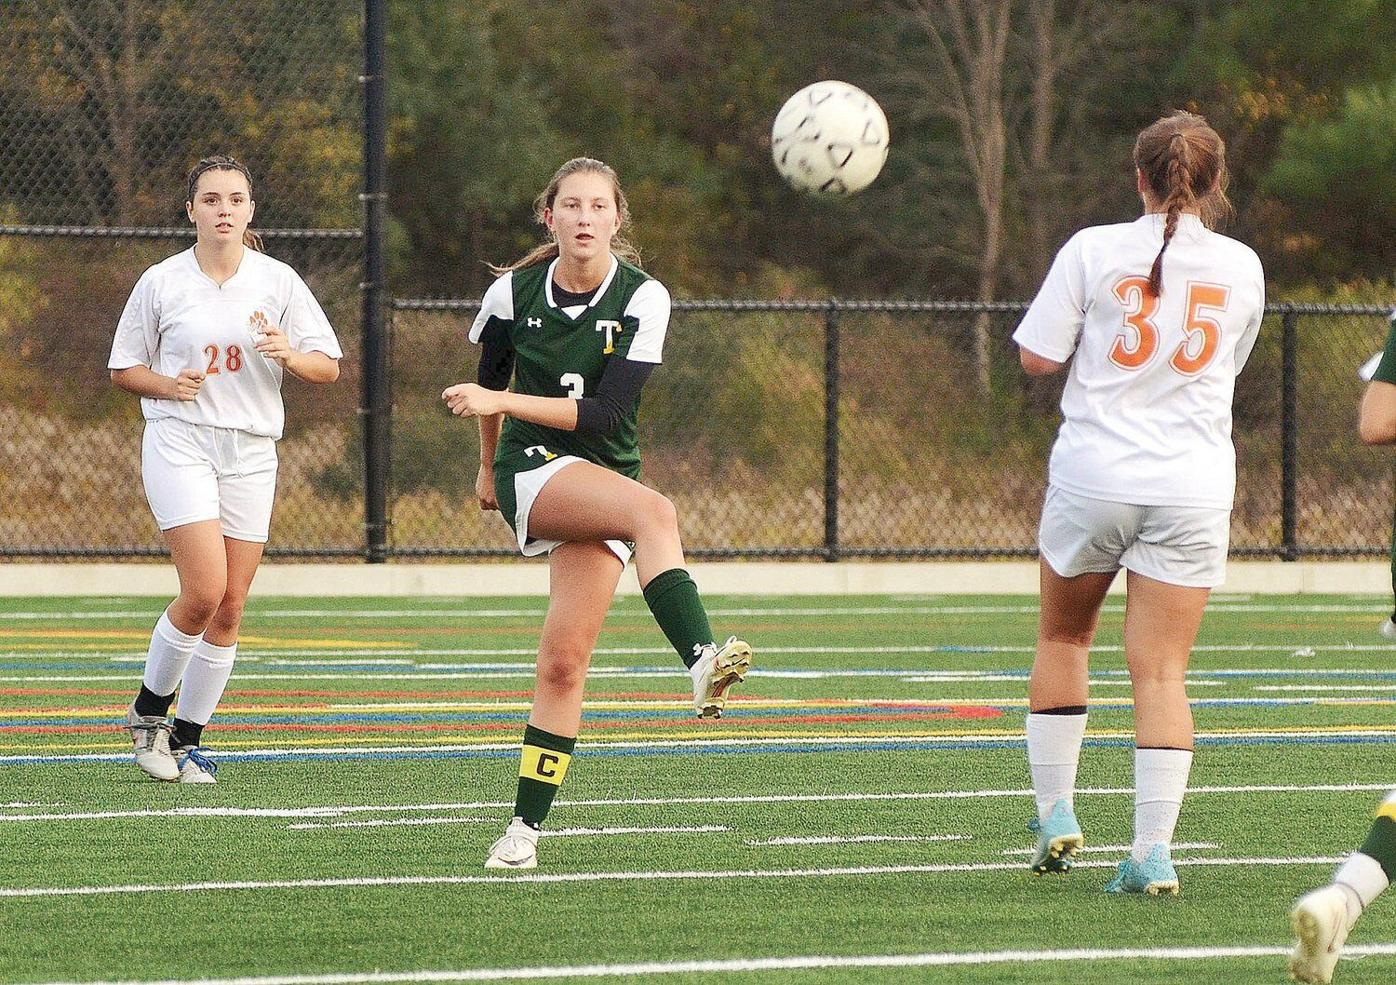 Maloney, Brown power Lee girls soccer team to win over Taconic (copy)